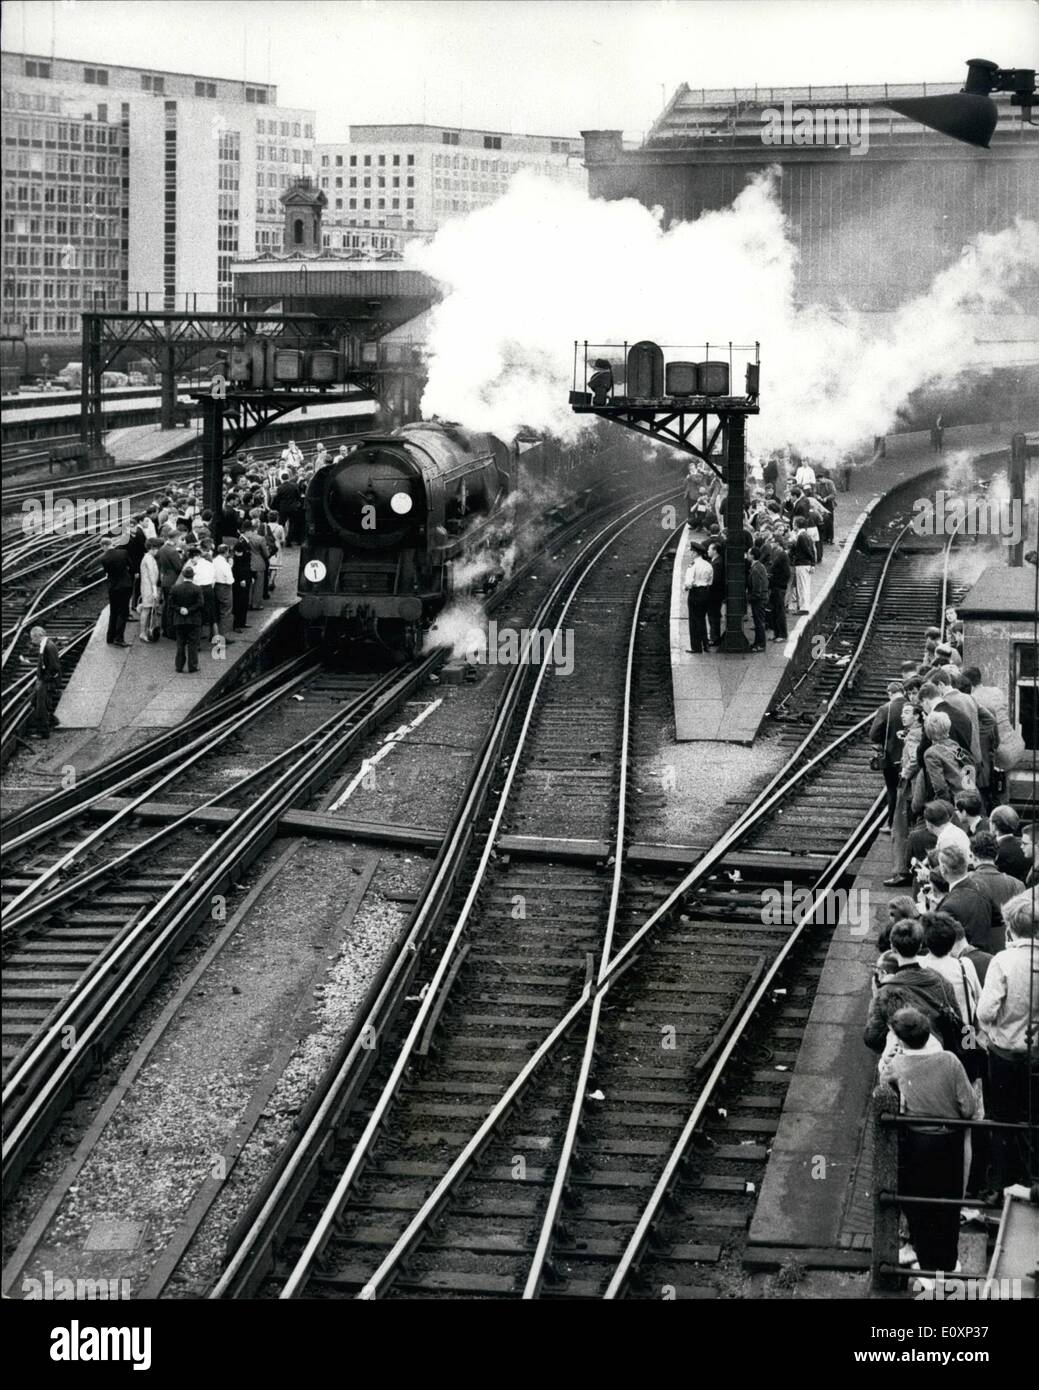 Jul. 07, 1967 - A Waterloo farewell to the era of steam; A merchant Navy class locomotive No. 35008 Orient Line left Waterloo station for Waymouth yesterday with one of two ''Farewell to Steam'' special trains to mark the end of steam on Southern Region main line passenger services. From Monday next, Waterloo Bournmouth Waymouth services will be operated by electric and diesel traction. Photo Shows The scene at Waterloo yesterday as the locomotive made its ''Farewell to Stem'' trip to Waymouth. - Stock Image